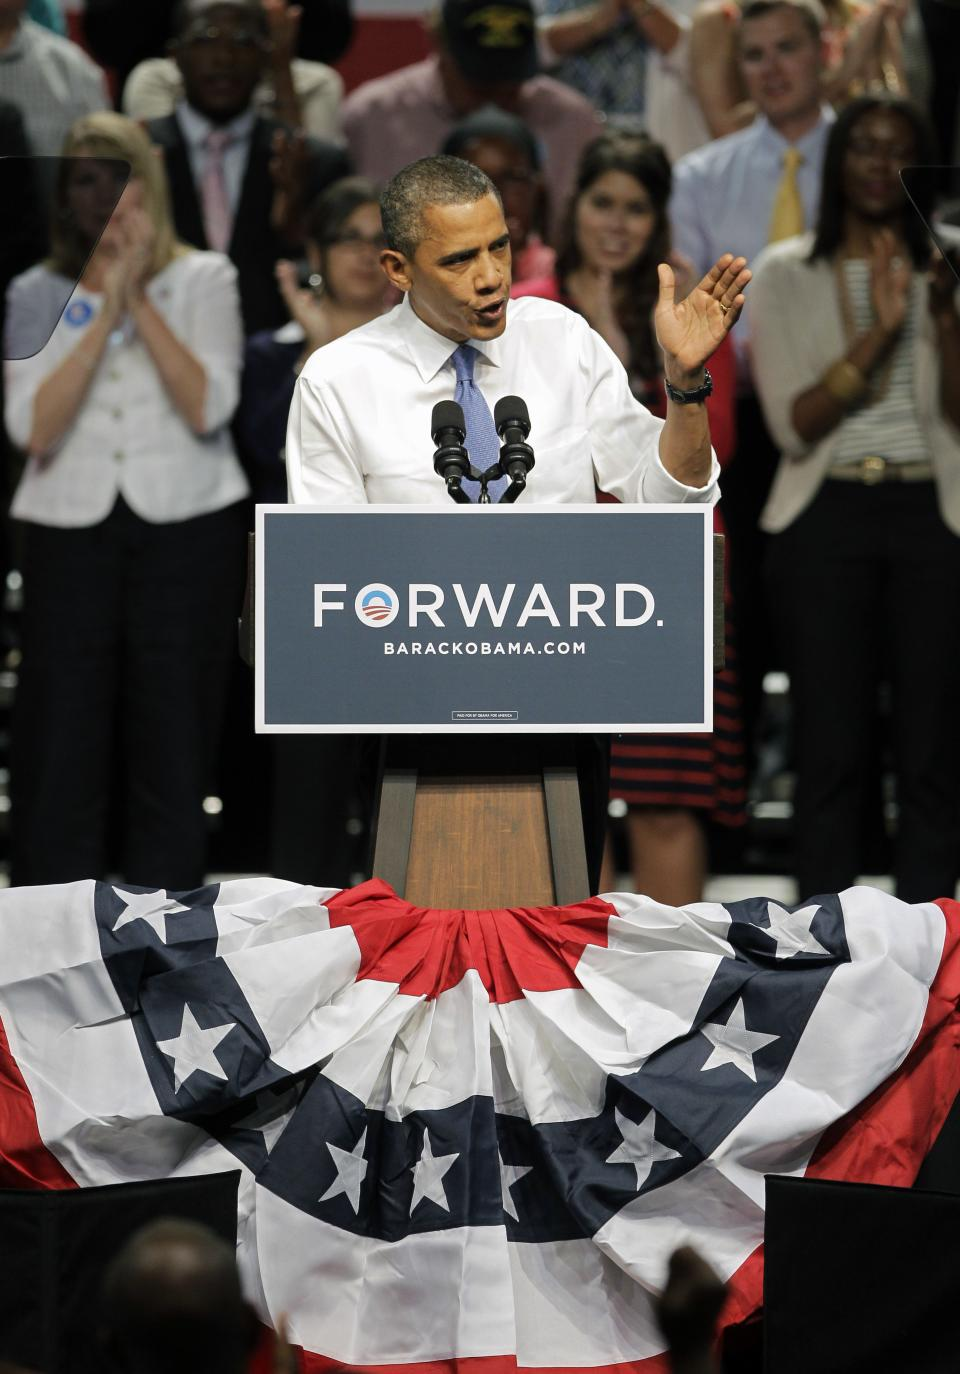 President Barack Obama campaigns Thursday, July 19, 2012, in Jacksonville, Fla. (AP Photo/John Raoux)